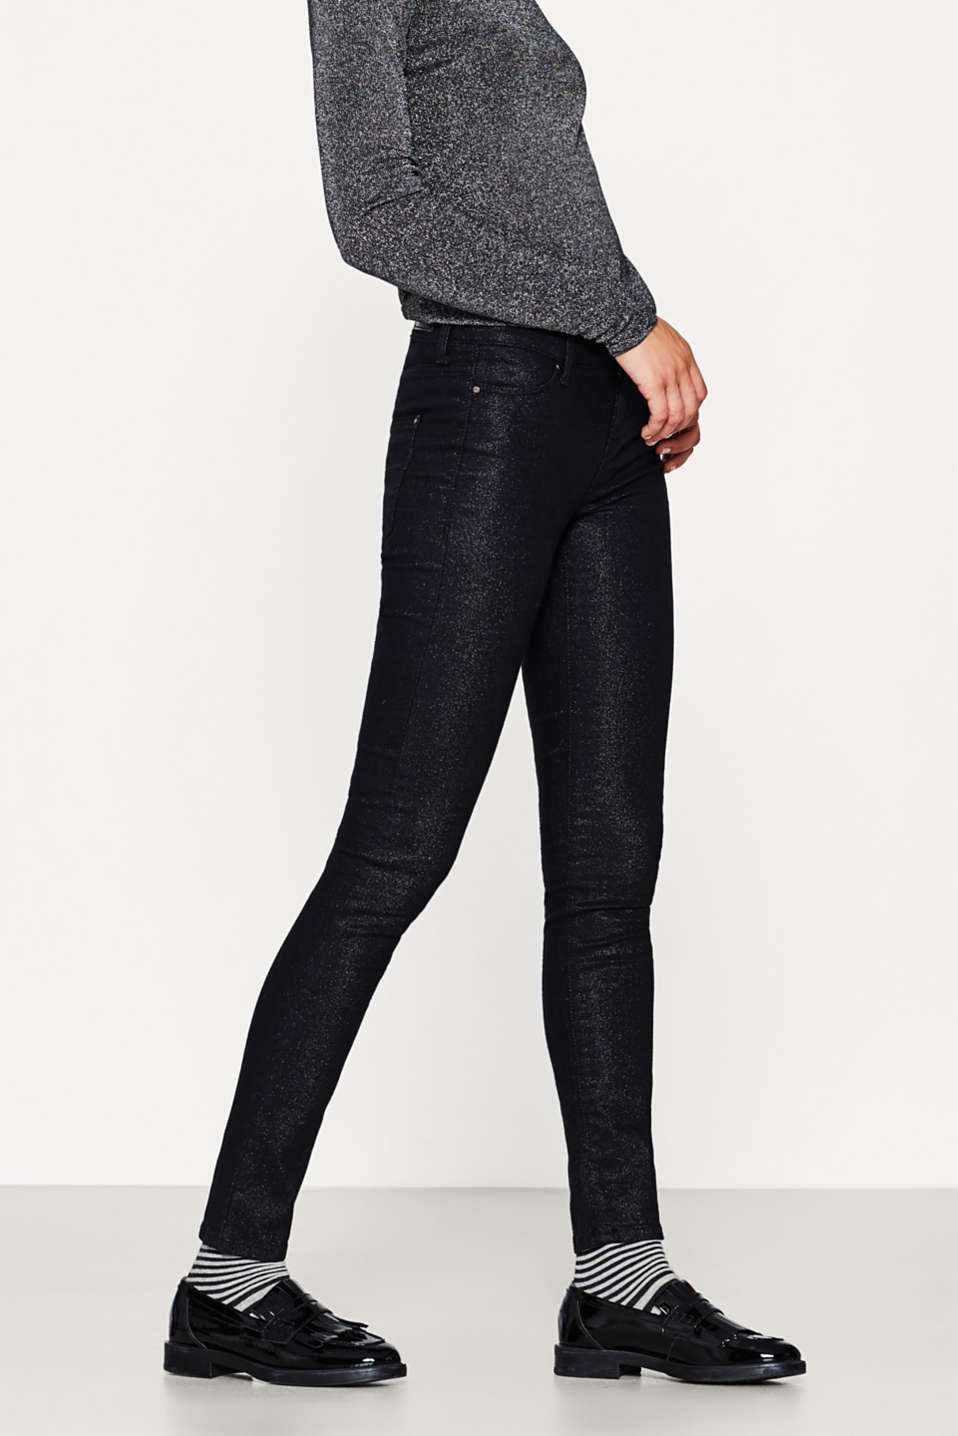 Esprit - Comfy + stretchy glittery jeans